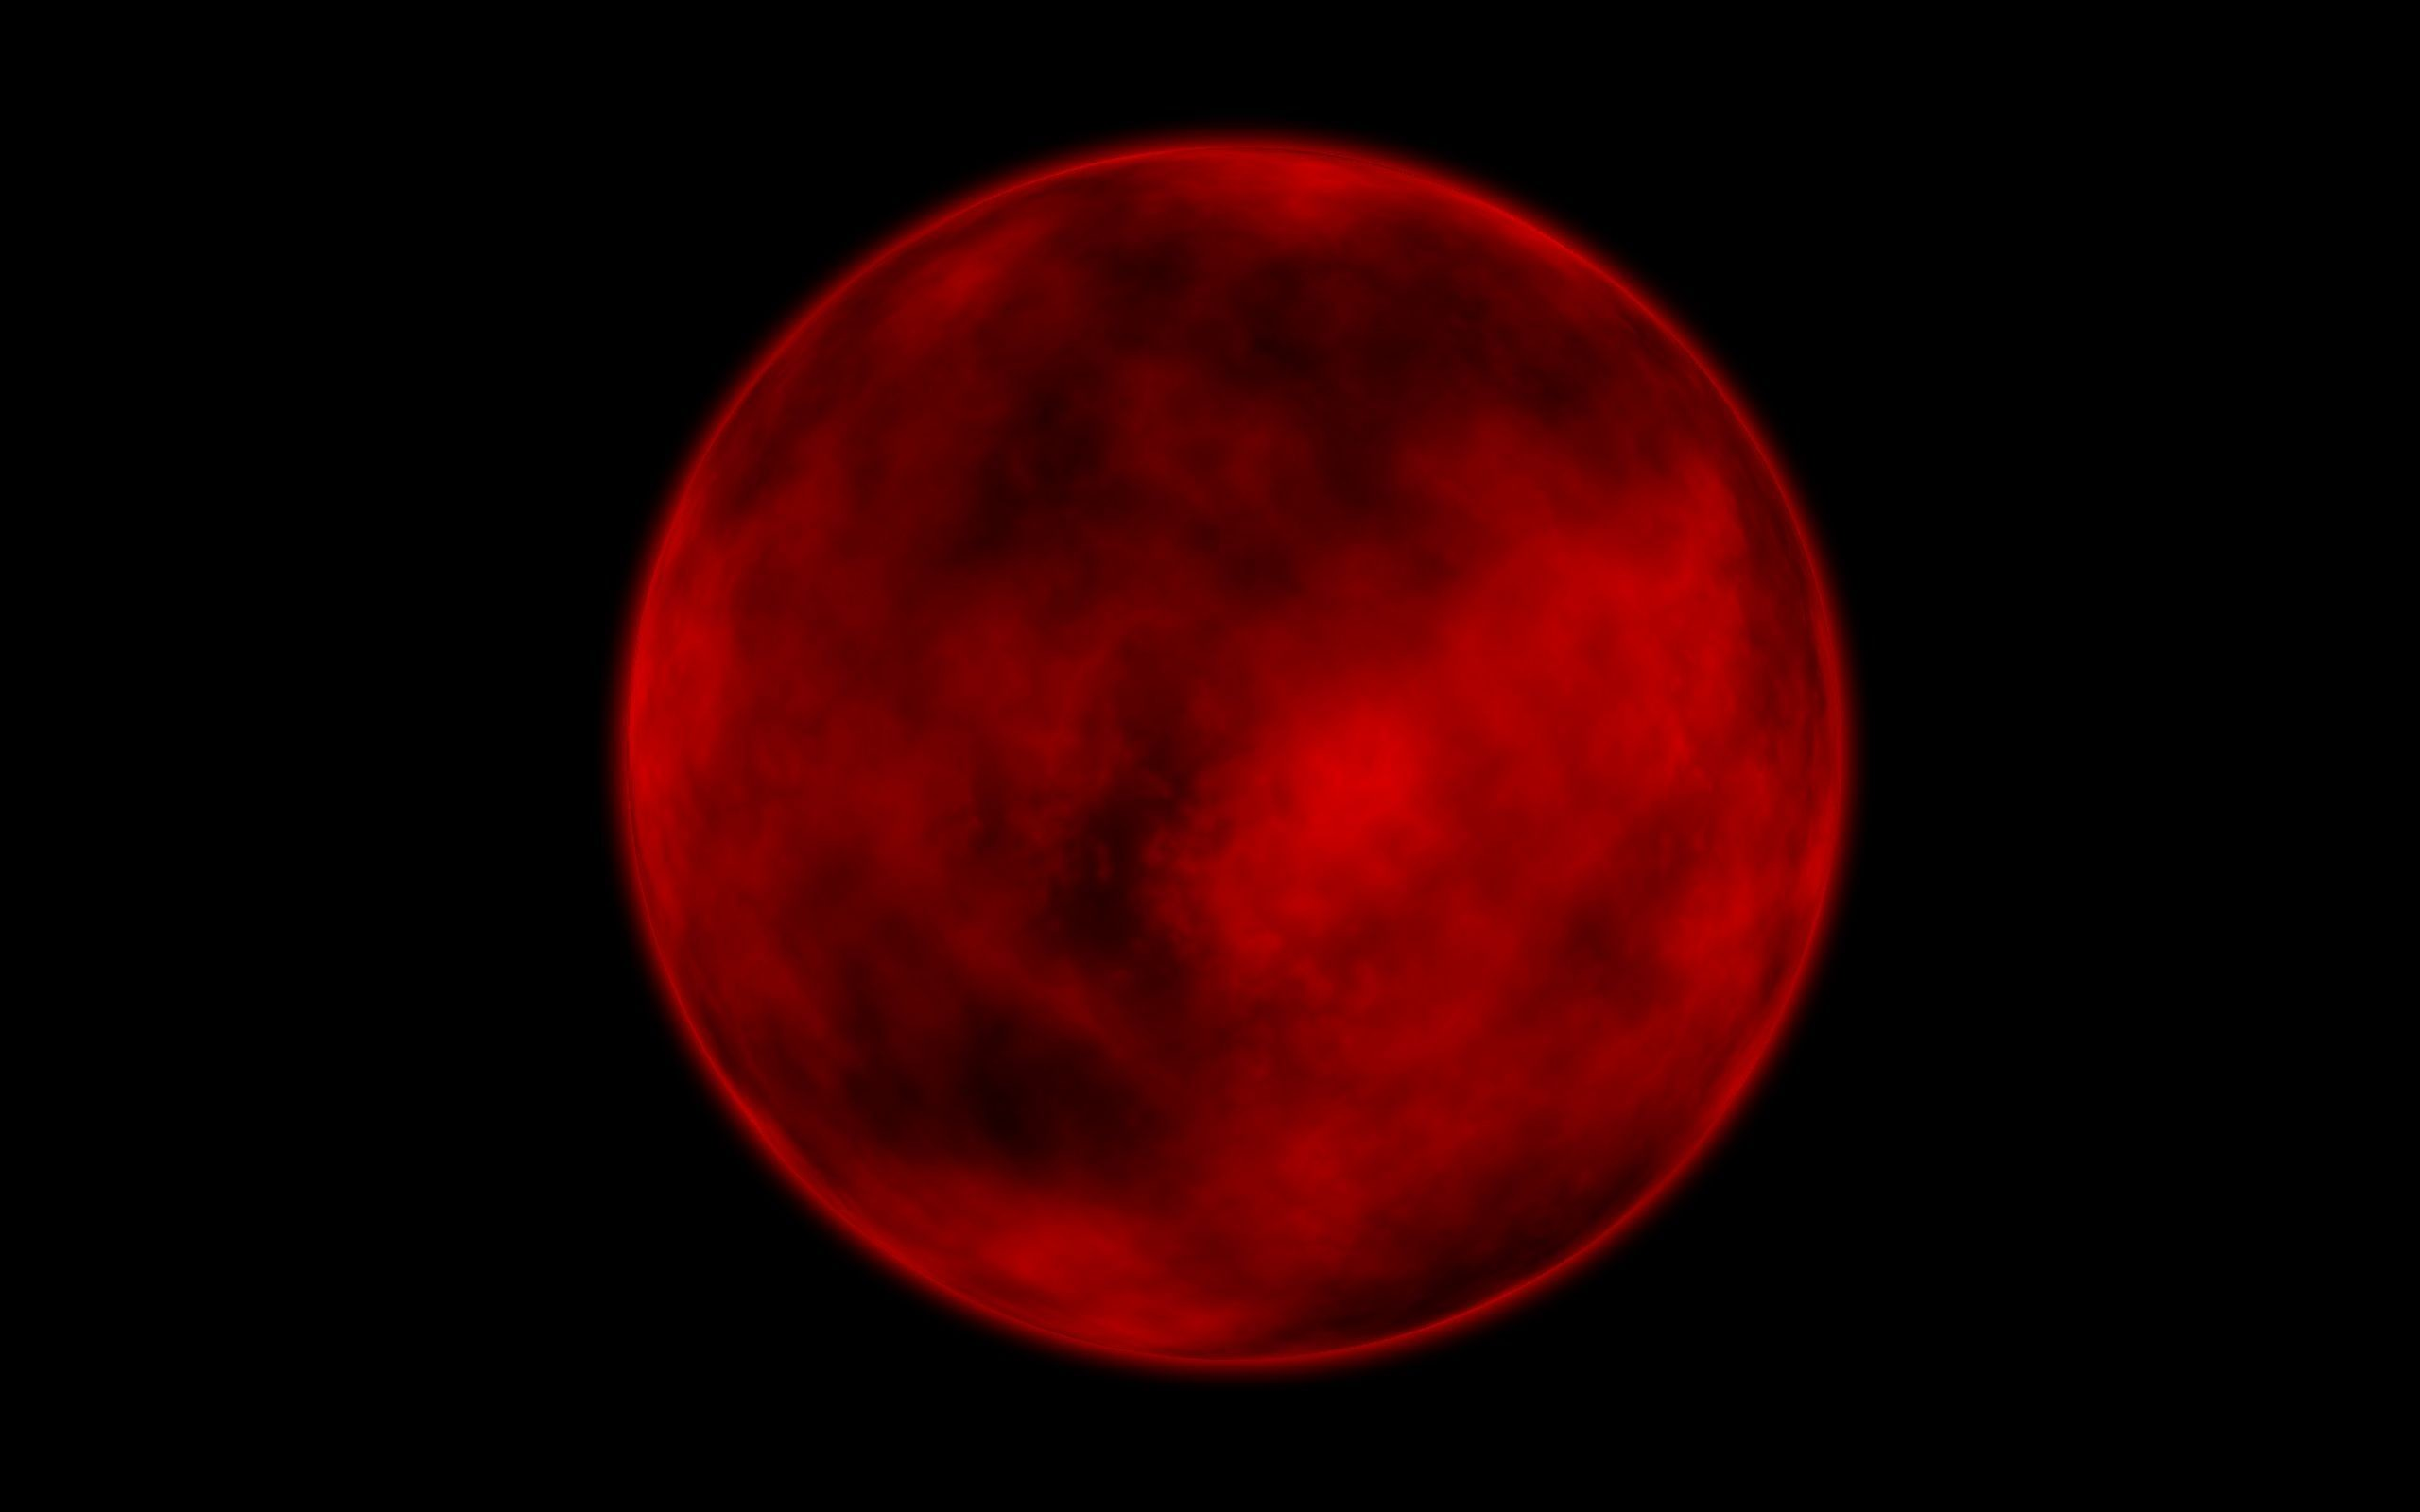 red moon images - photo #37